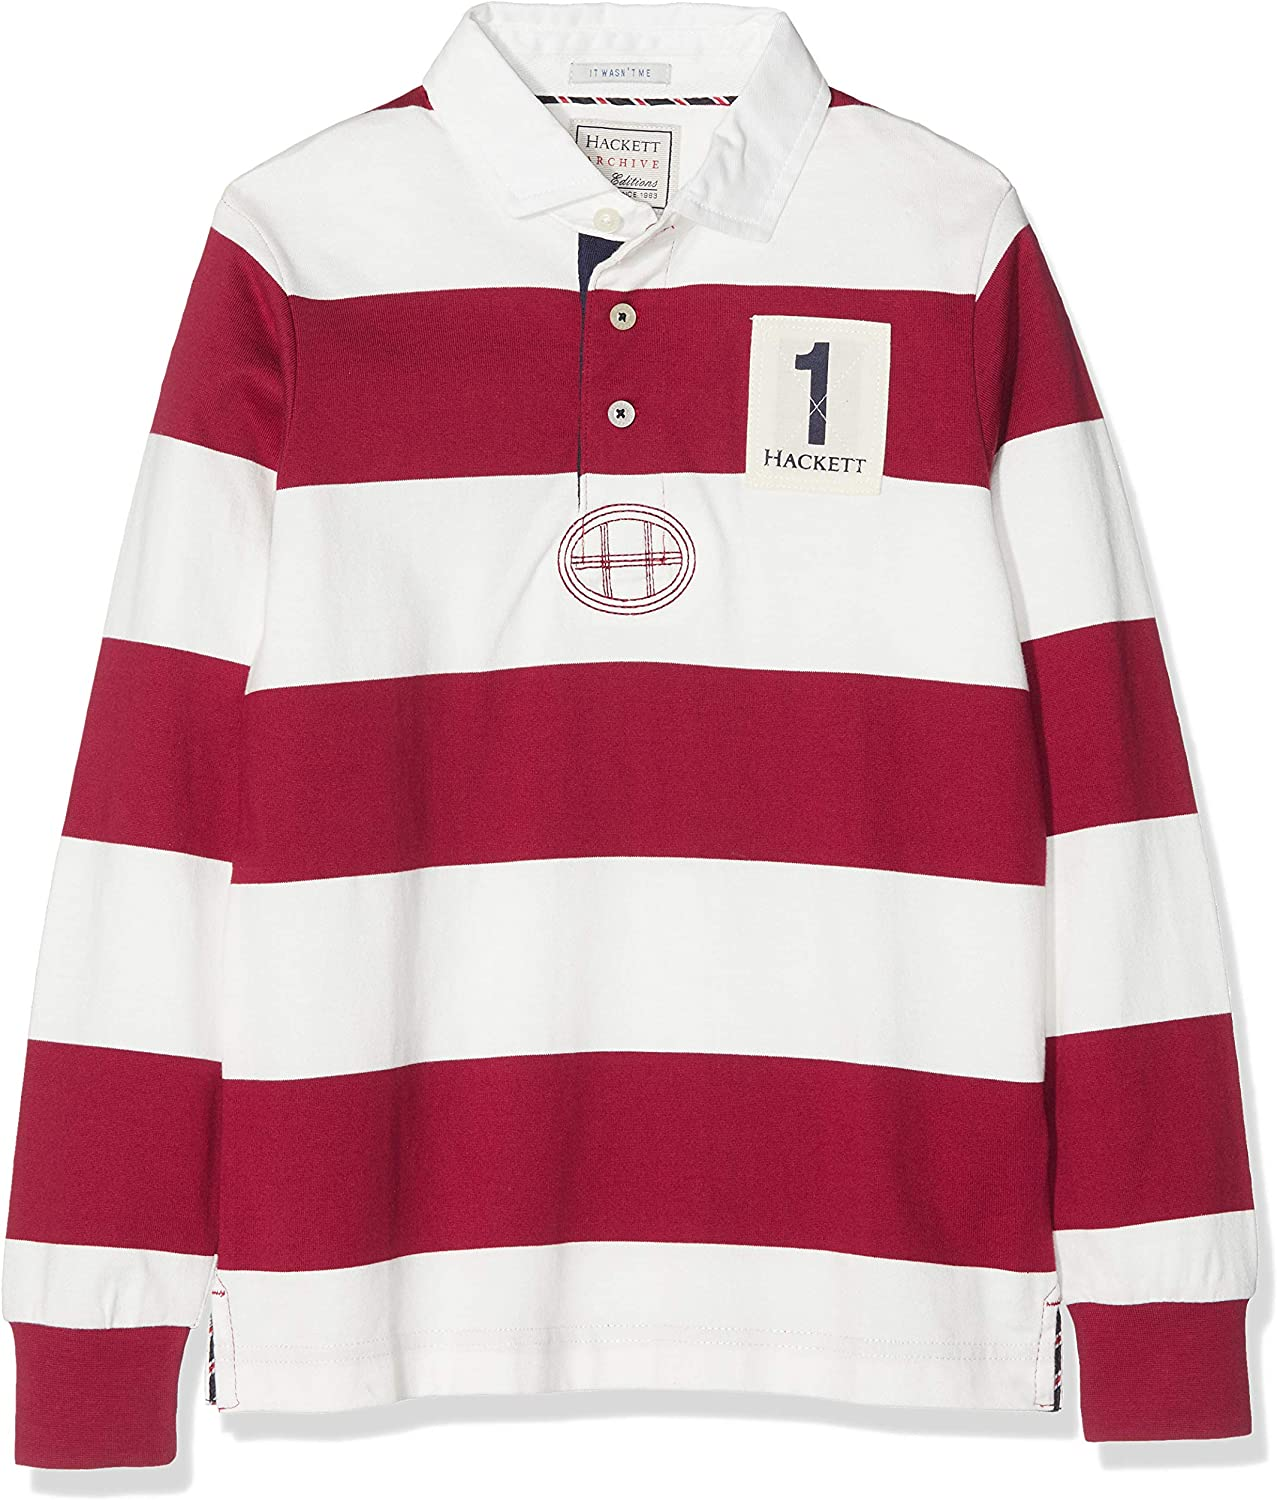 Hackett London Yd St Rugby Polo para Niños: Amazon.es: Ropa y ...